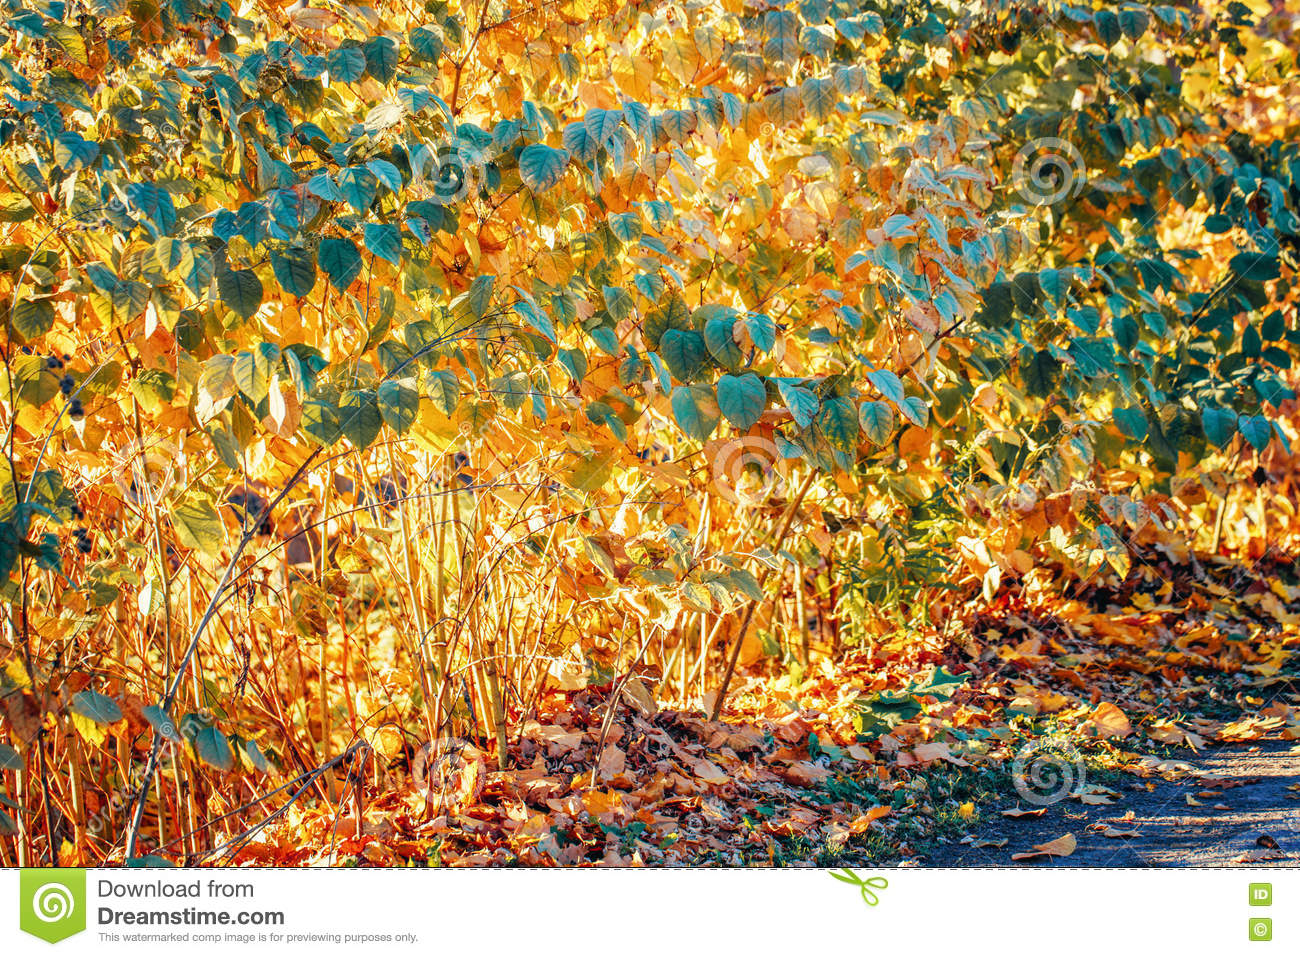 Colorful yellow red autumn fall leaves on tree branches, bushes, fall season, card wallpaper, textured background